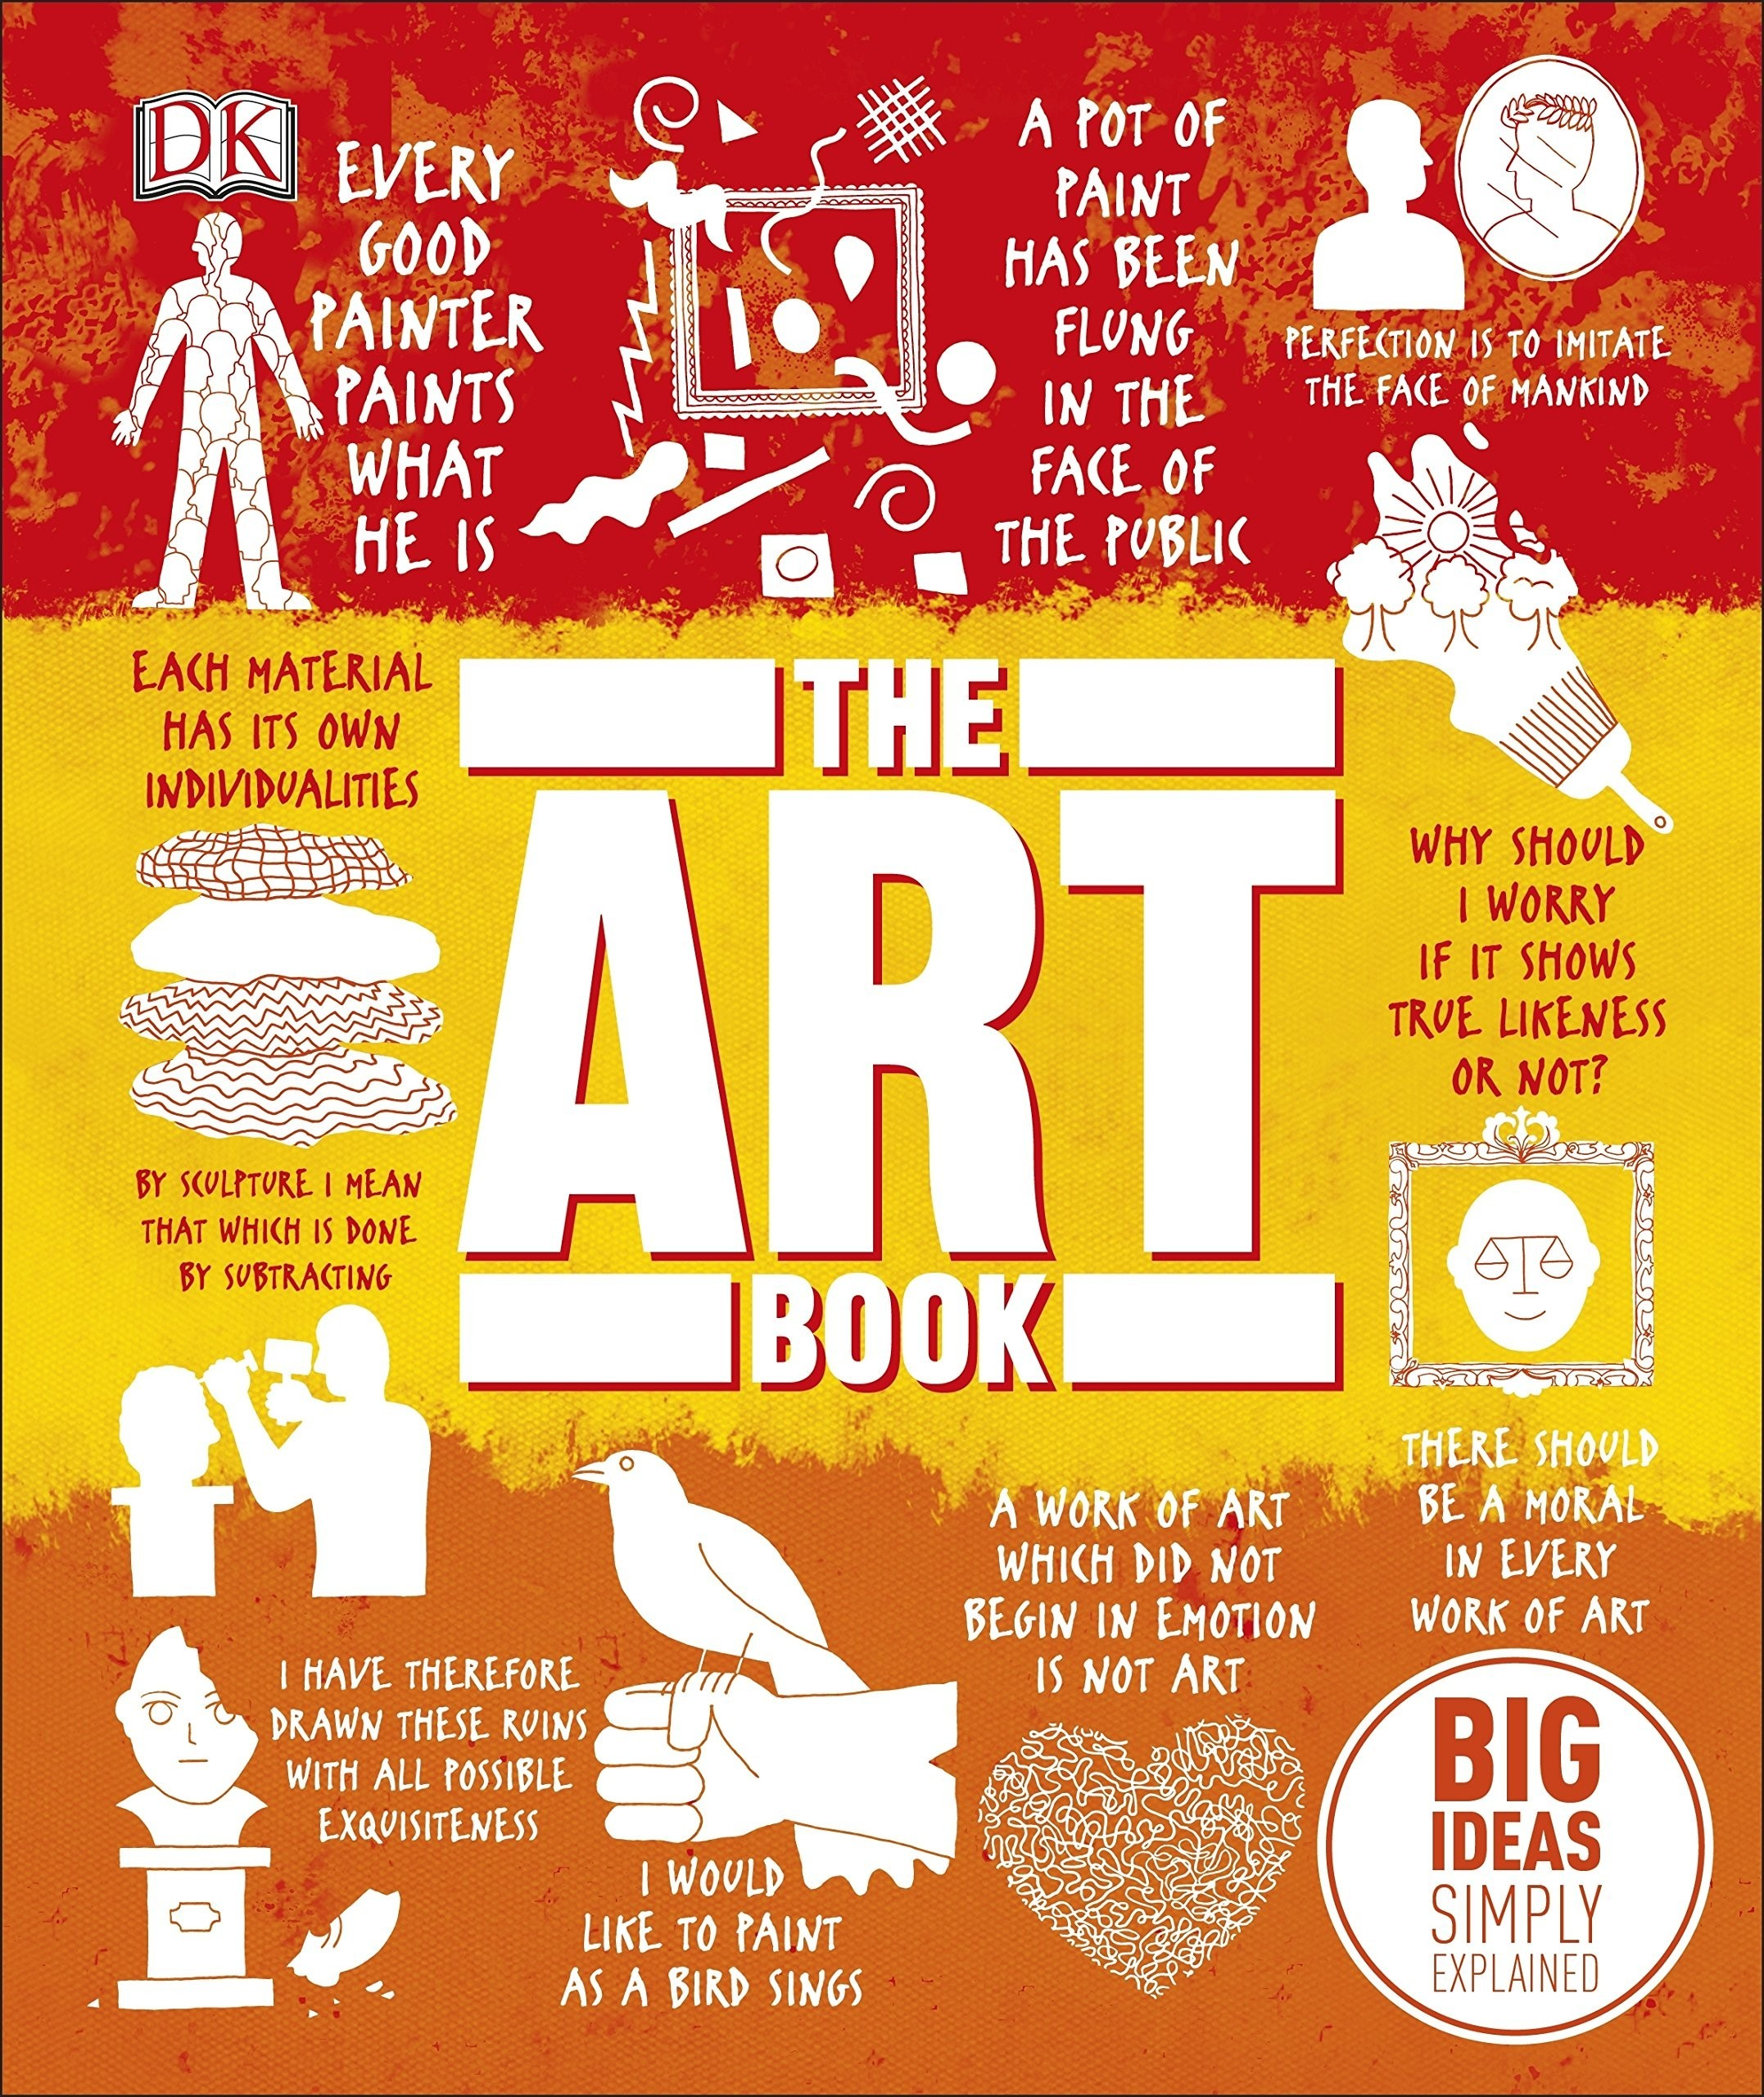 Embark on a grand tour of art history with this guide to the story of art, and the big ideas and themes behind the world's most important artistic movements, artworks, and artists.The Art Book explores the more than 80 of the world's most groundbreaking artworks by history's most influential painters, sculptors, and artists with stunning visuals and insightful quotations. Discover key artworks and artists from across the globe, stretching from the prehistoric Altamira cave paintings and Chinese jade carvings to more impressionism, symbolism, cubism, and pop art.Understand the ideas that inspired masterpieces by Botticelli, Rembrandt, Klimt, Matisse, Picasso, and dozens more, with The Art Book's fascinating overview of painting, drawing, printing, sculpture, conceptual art, and performance art, from ancient history to the modern day.